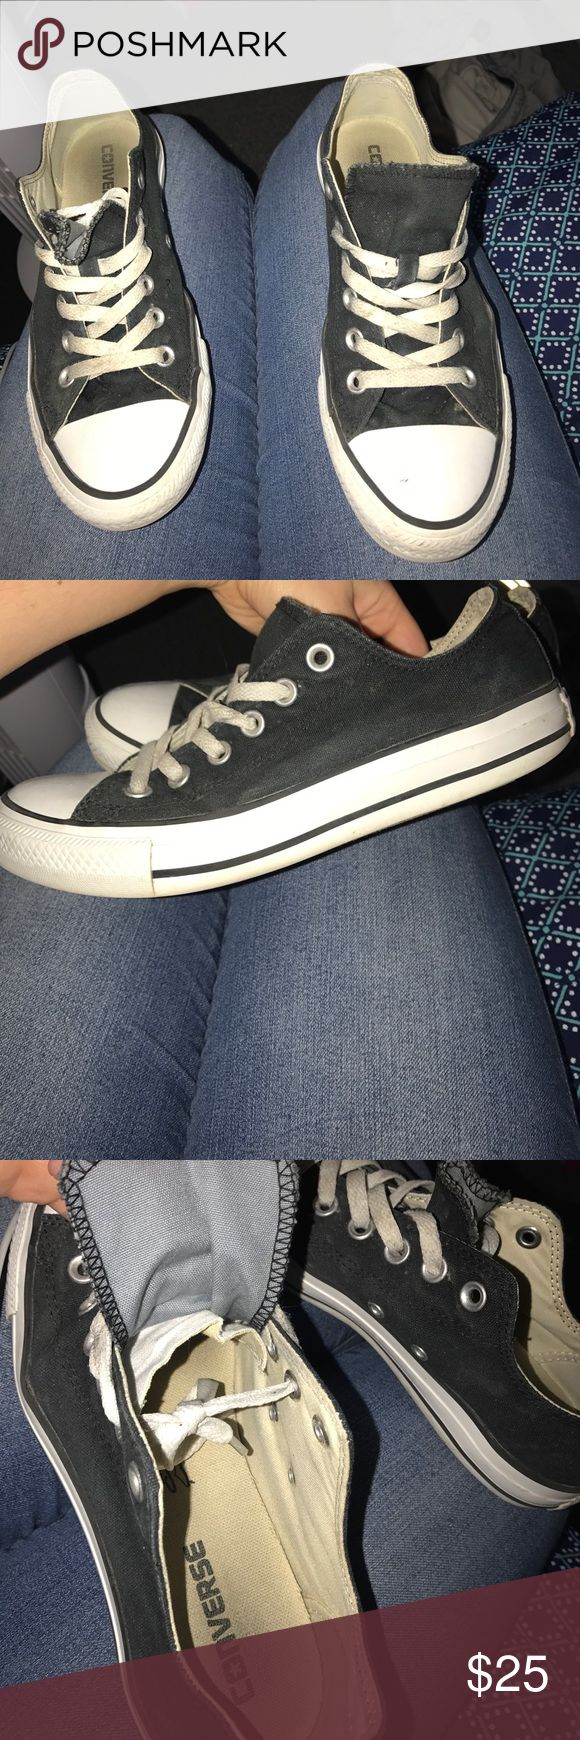 Black low top converse Black low top converse. Worn but good condition. I will clean the edges before shipping. They could use some new laces which would really make them look good. These are a size 8 women's but the tag was cut out. Converse Shoes